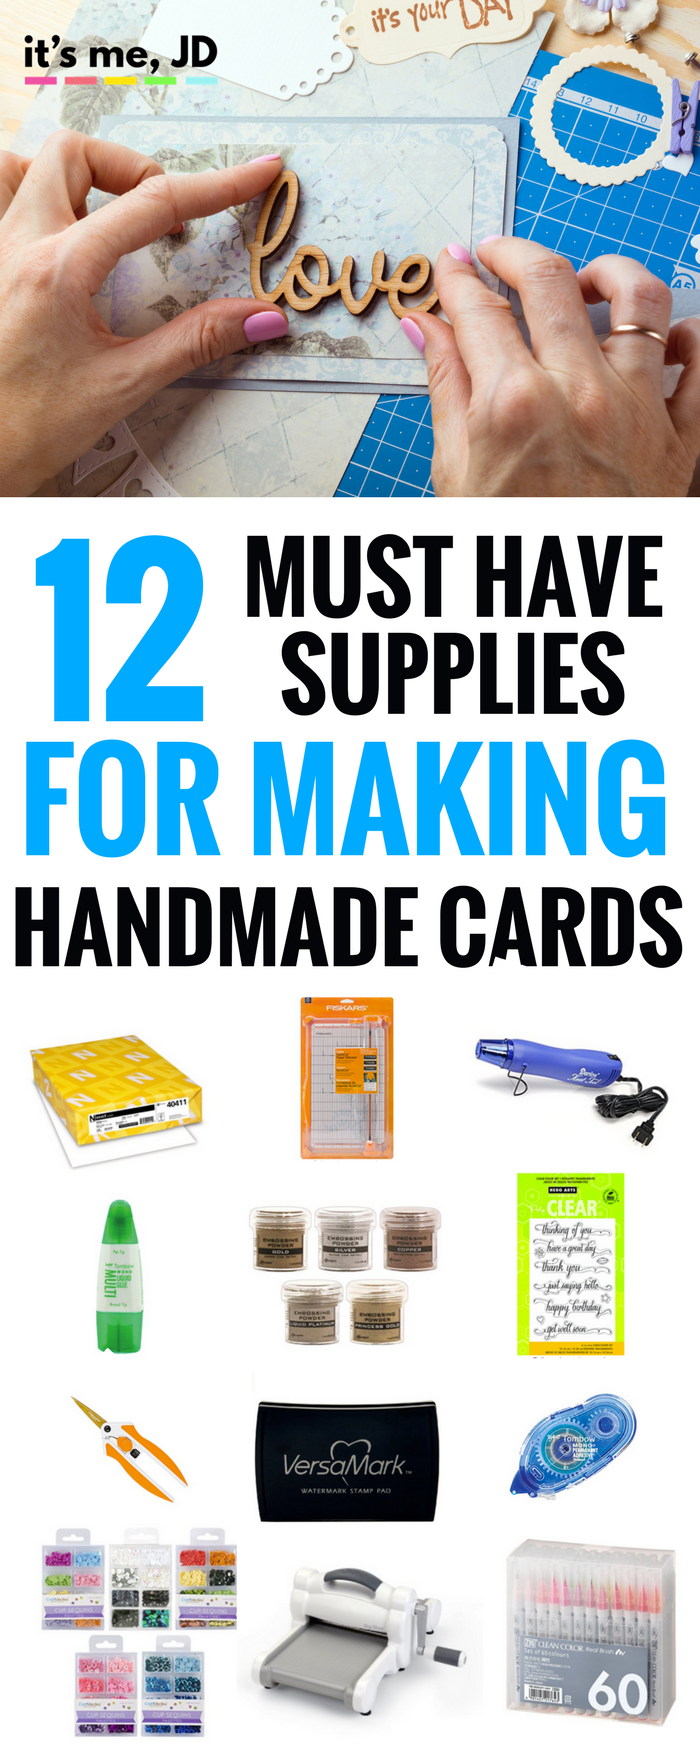 12 MUST HAVE SUPPLIES FOR CARD MAKING, tools, accessories, online